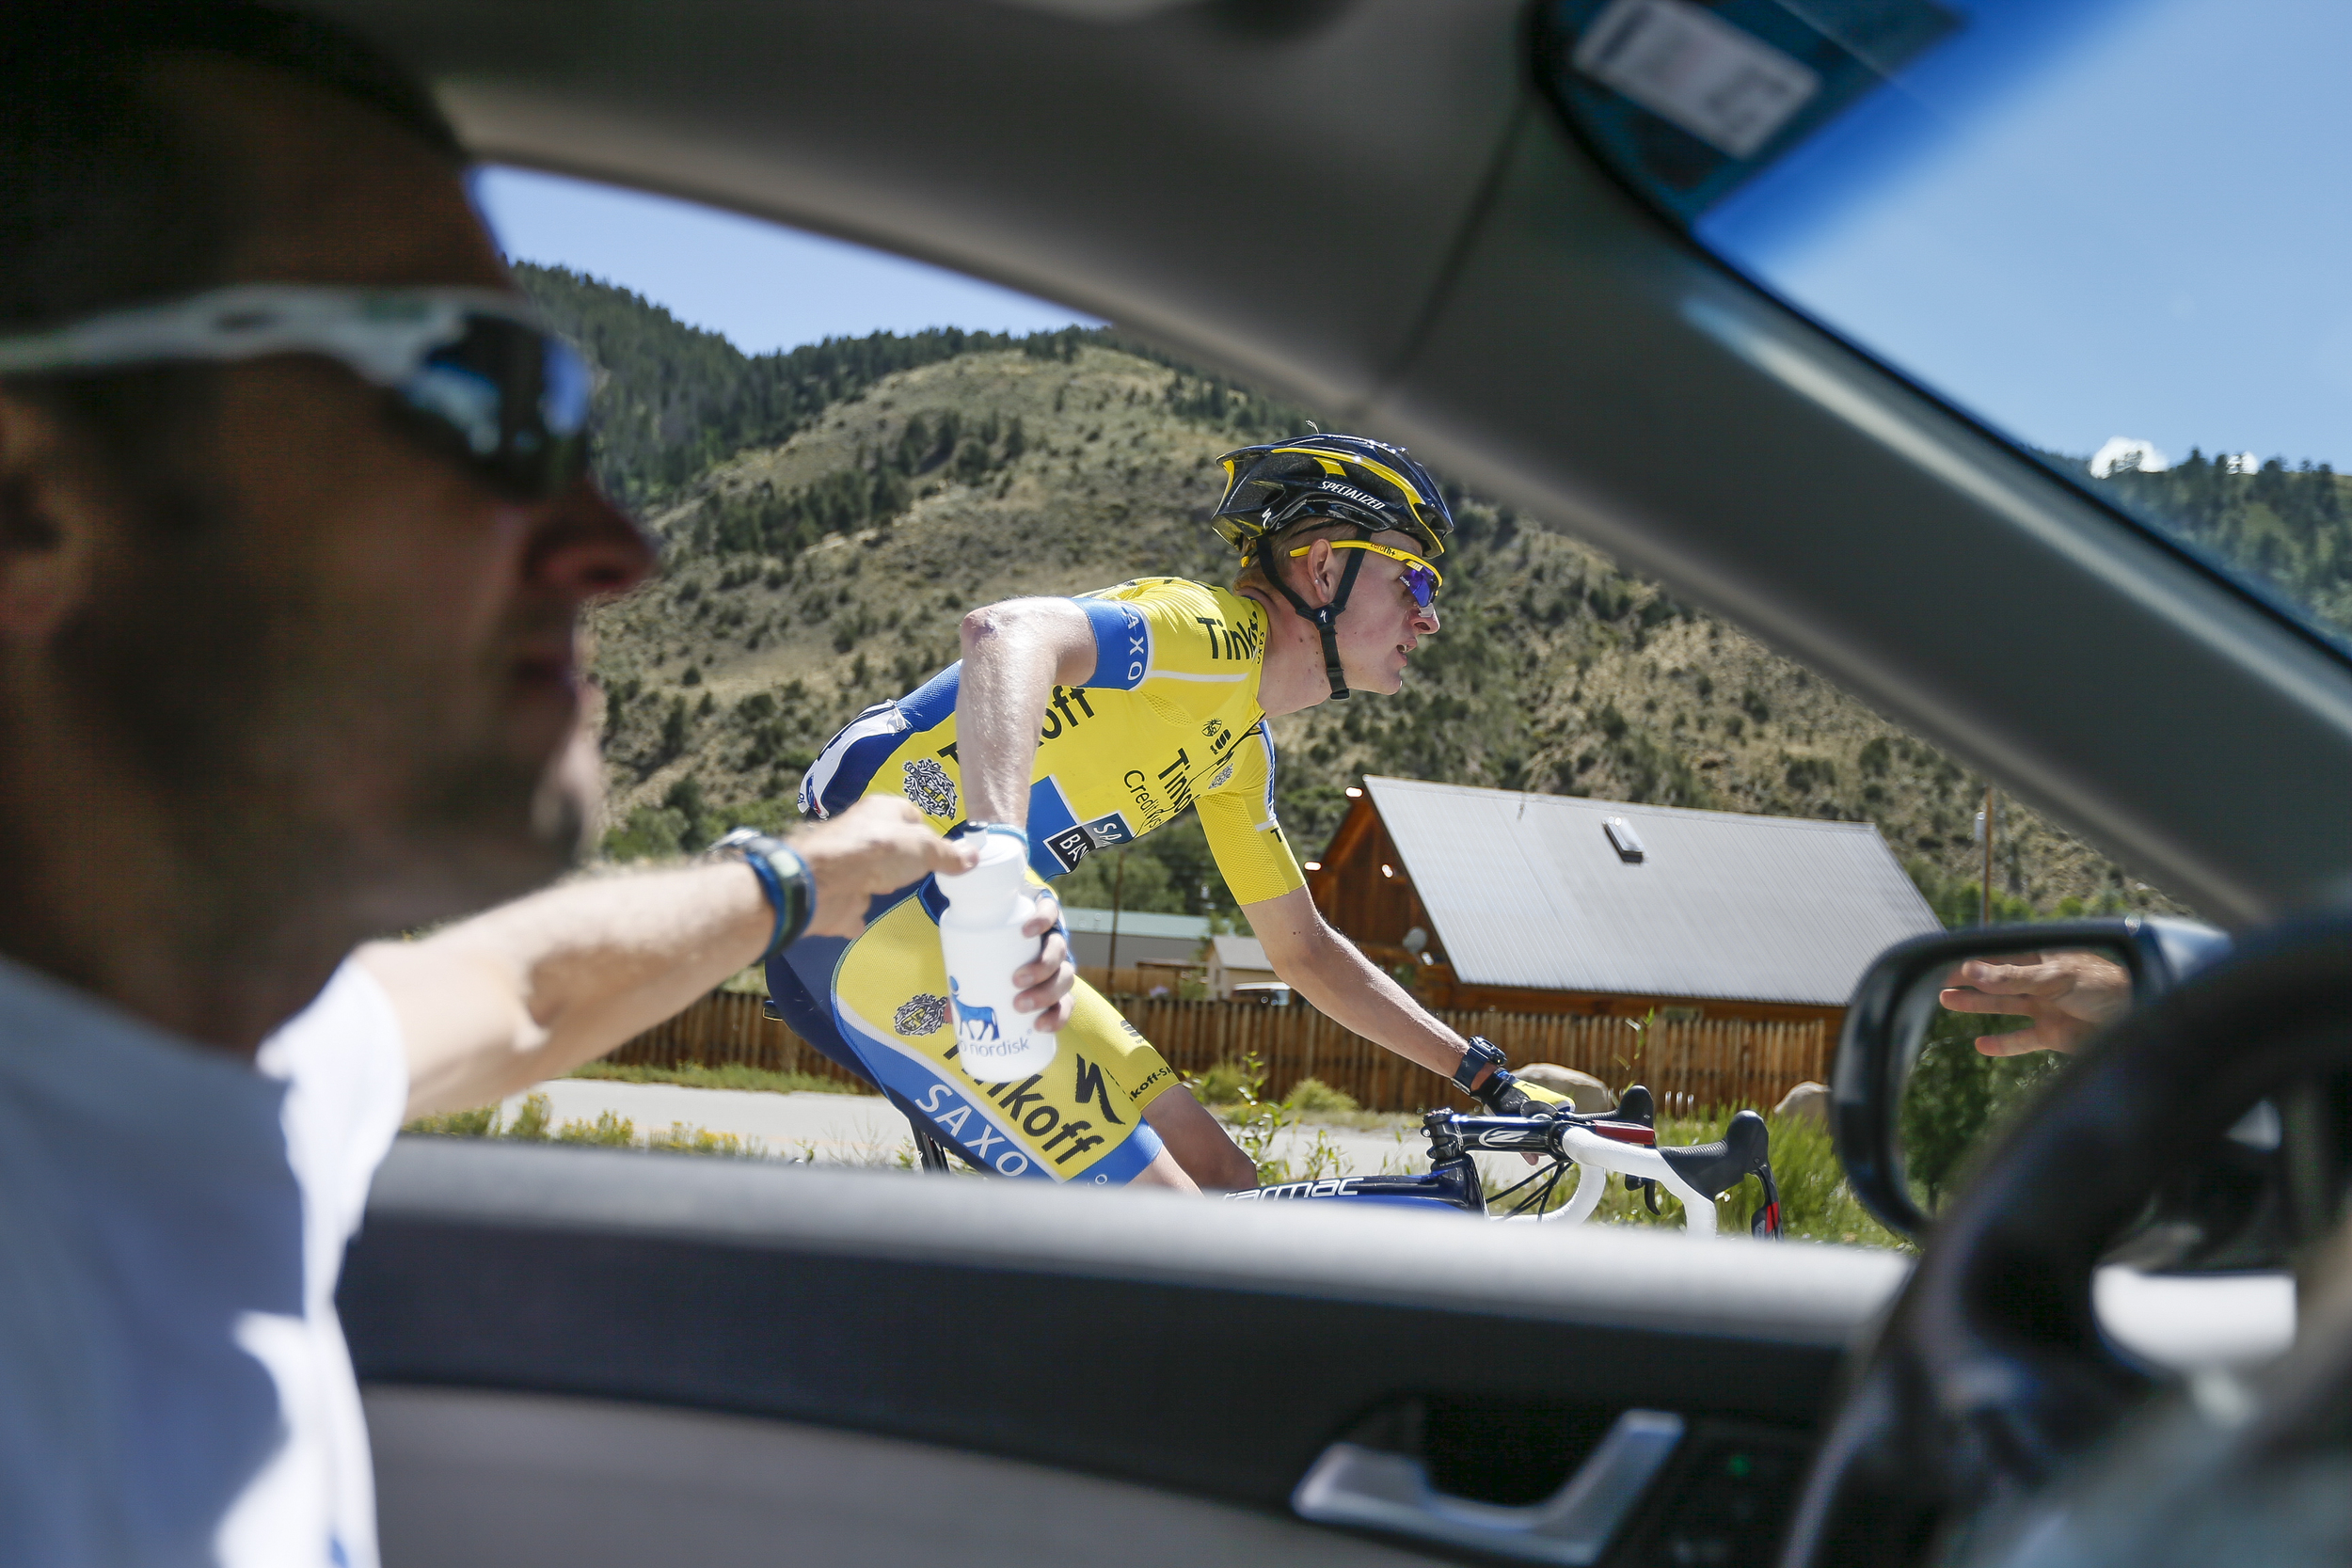 We suffer together   The Breakaway    Stage 3 Gallery